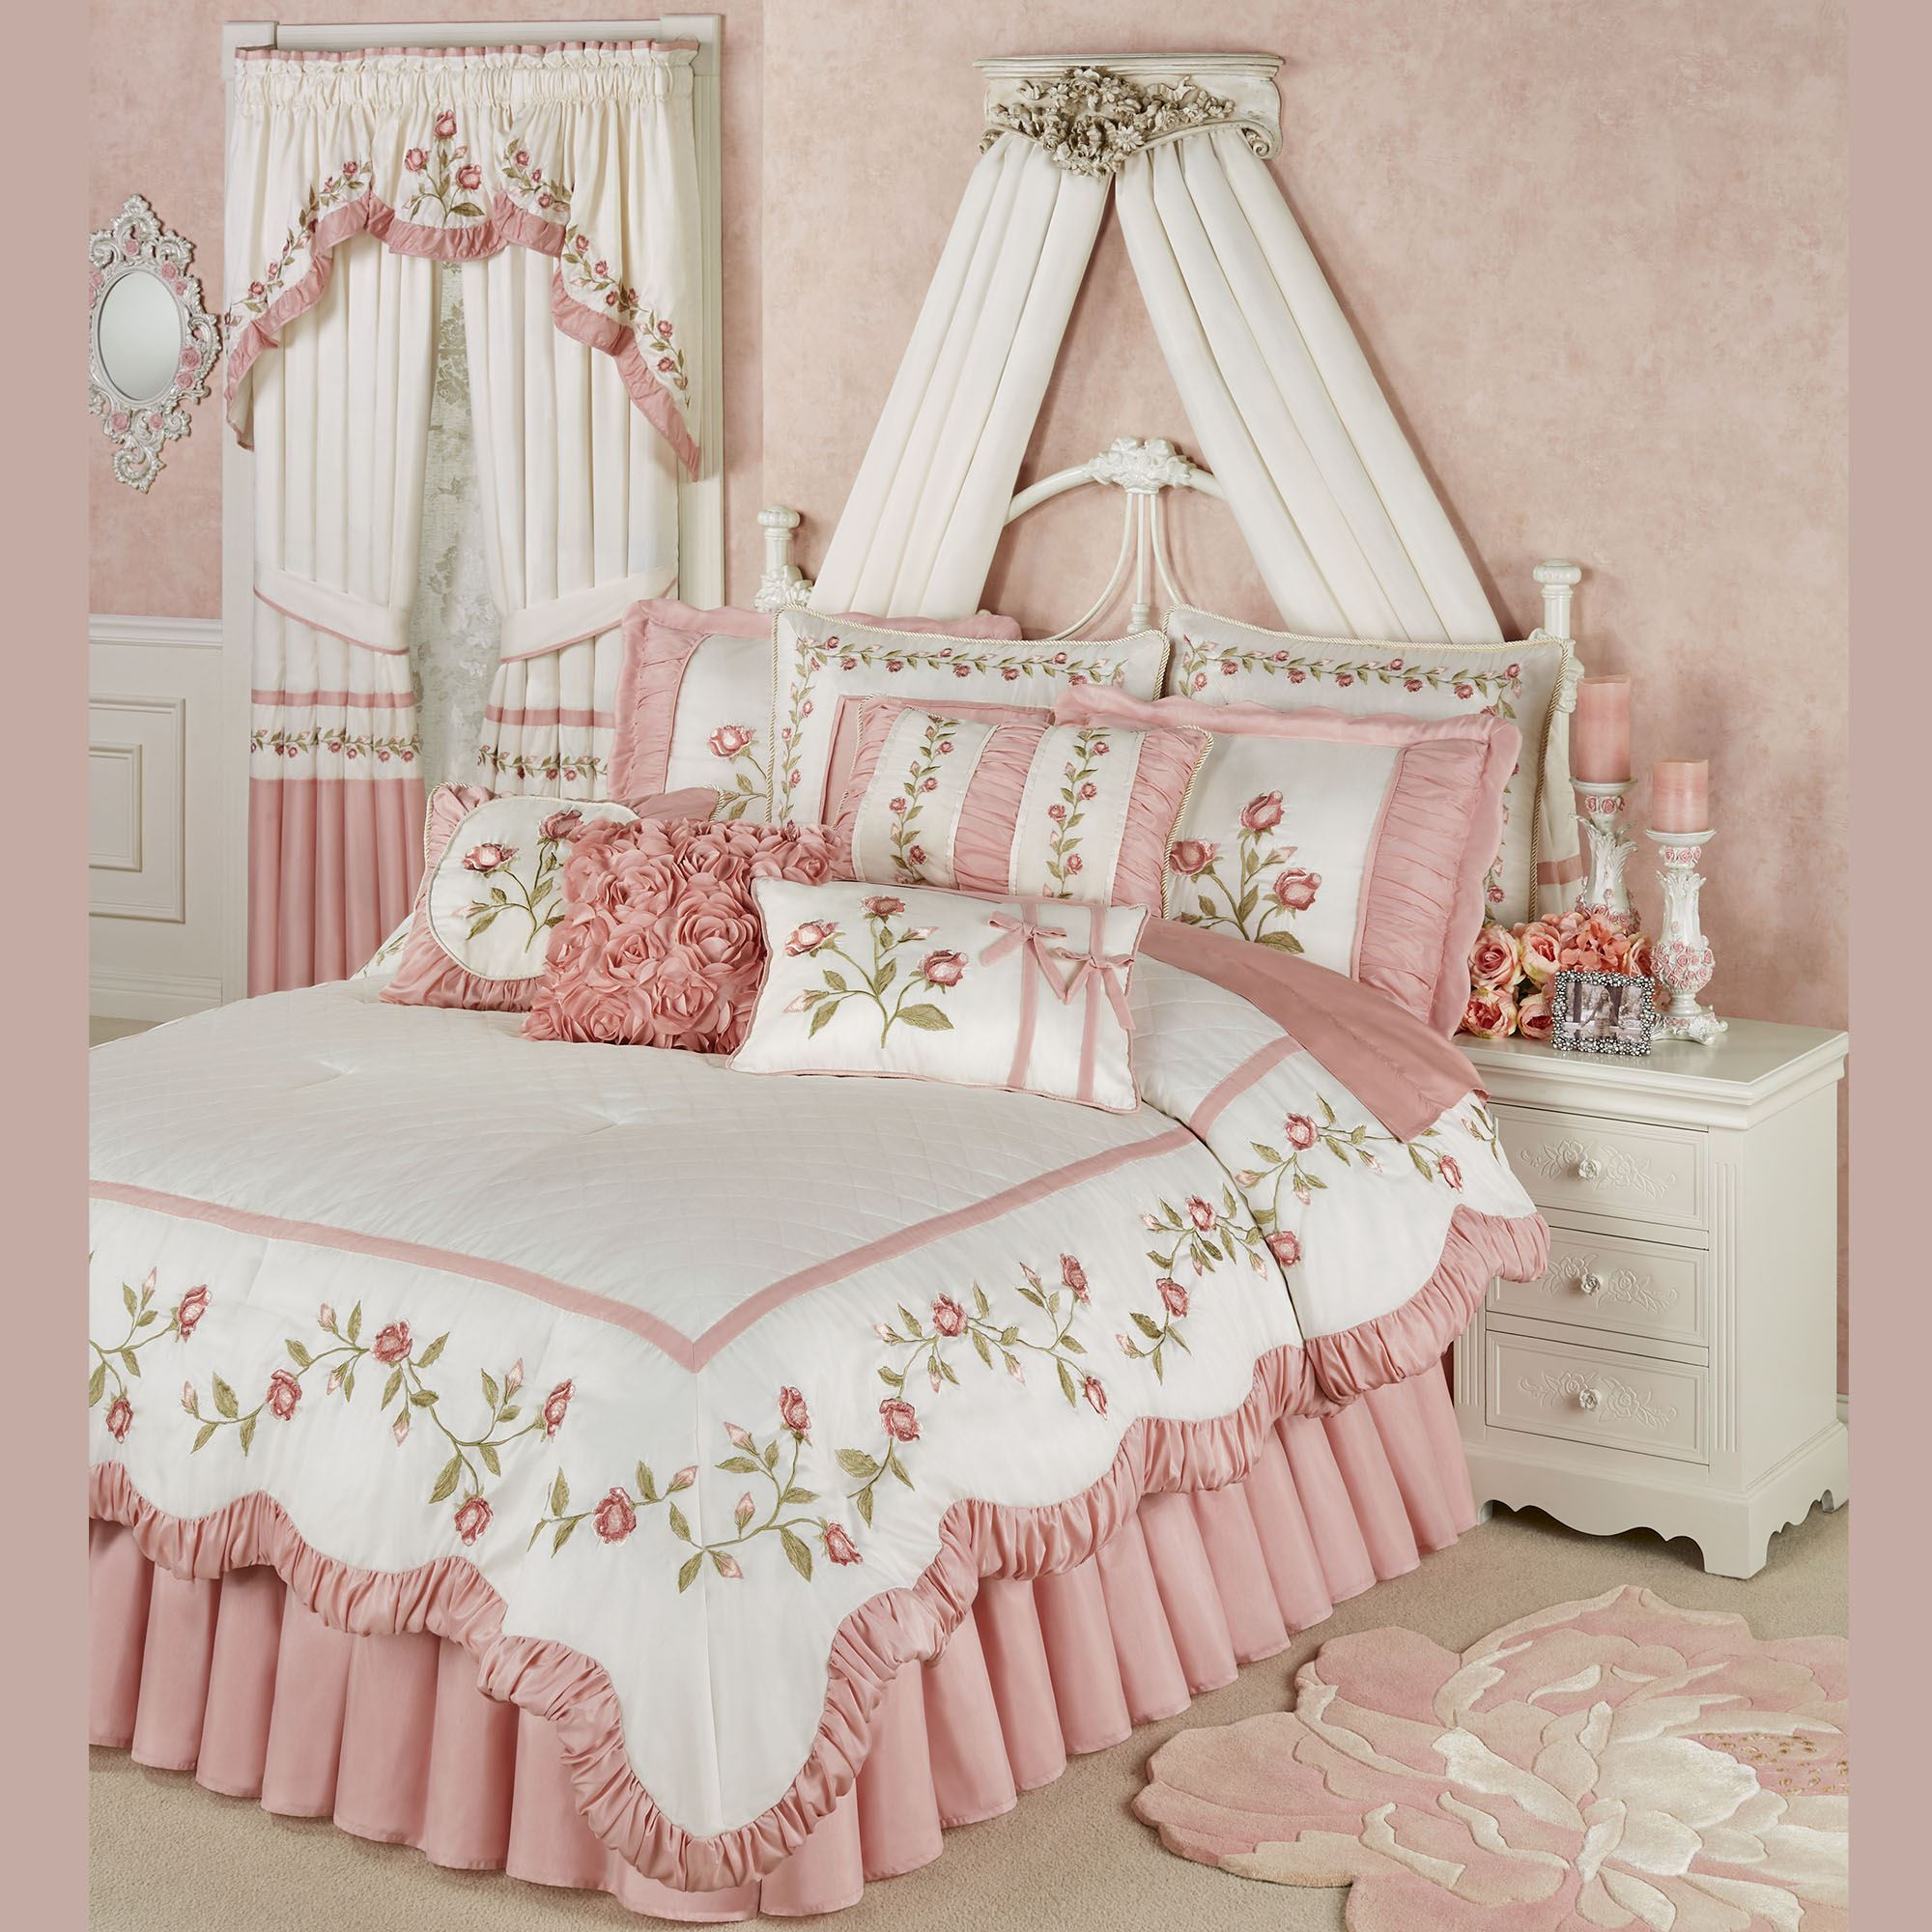 PINK ROSE EMBROIDERED BLUSH  DUVET SET IN DOUBLE KING OR SUPERKING OR CURTAINS